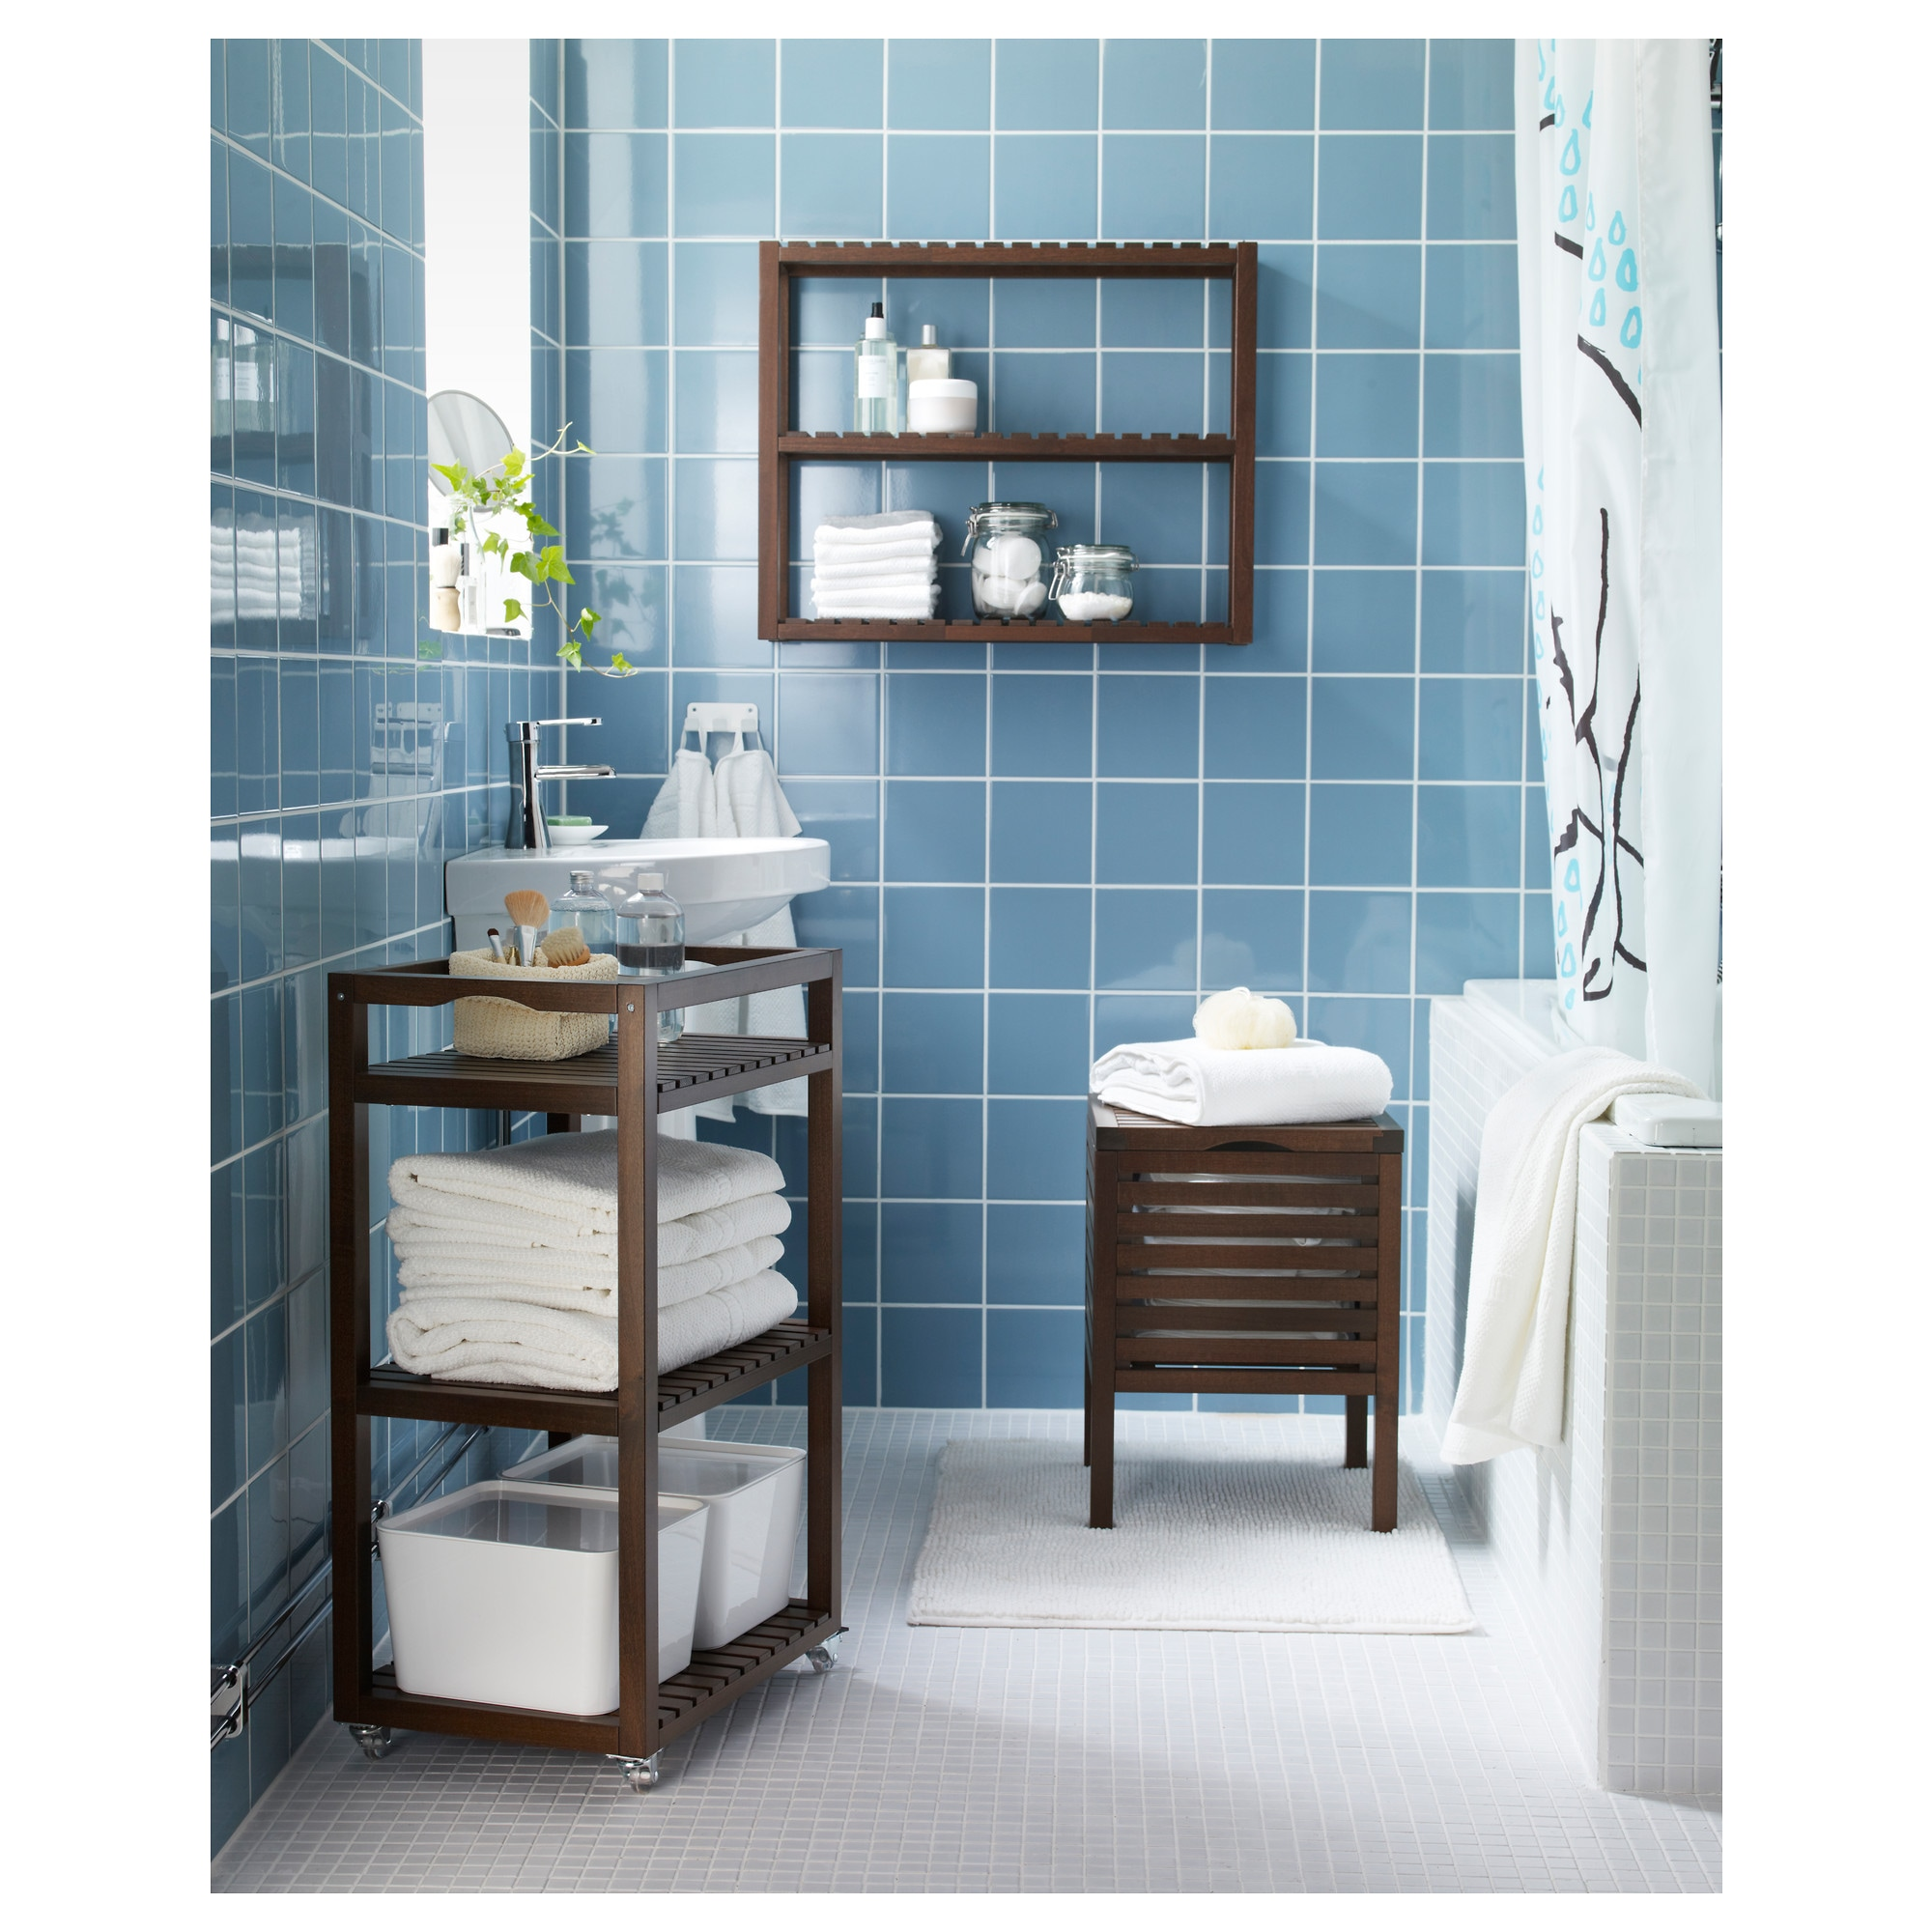 Ikea Bathroom molger cart - birch - ikea